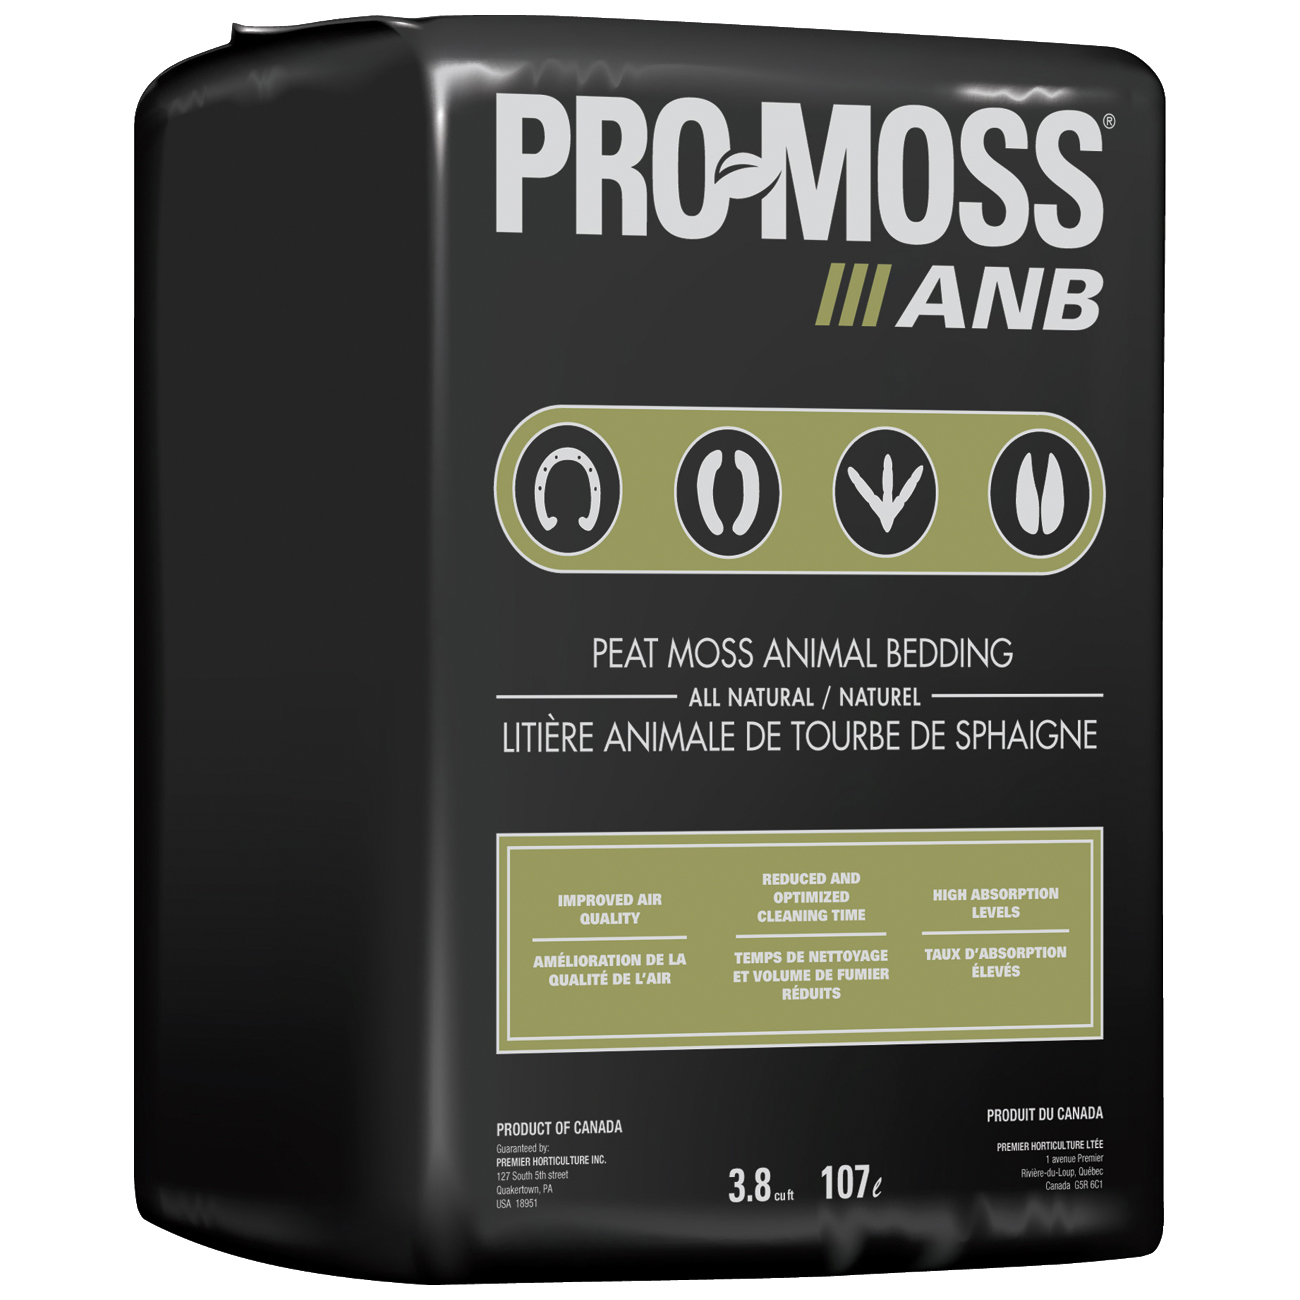 PEAT MOSS ANIMAL BEDDING